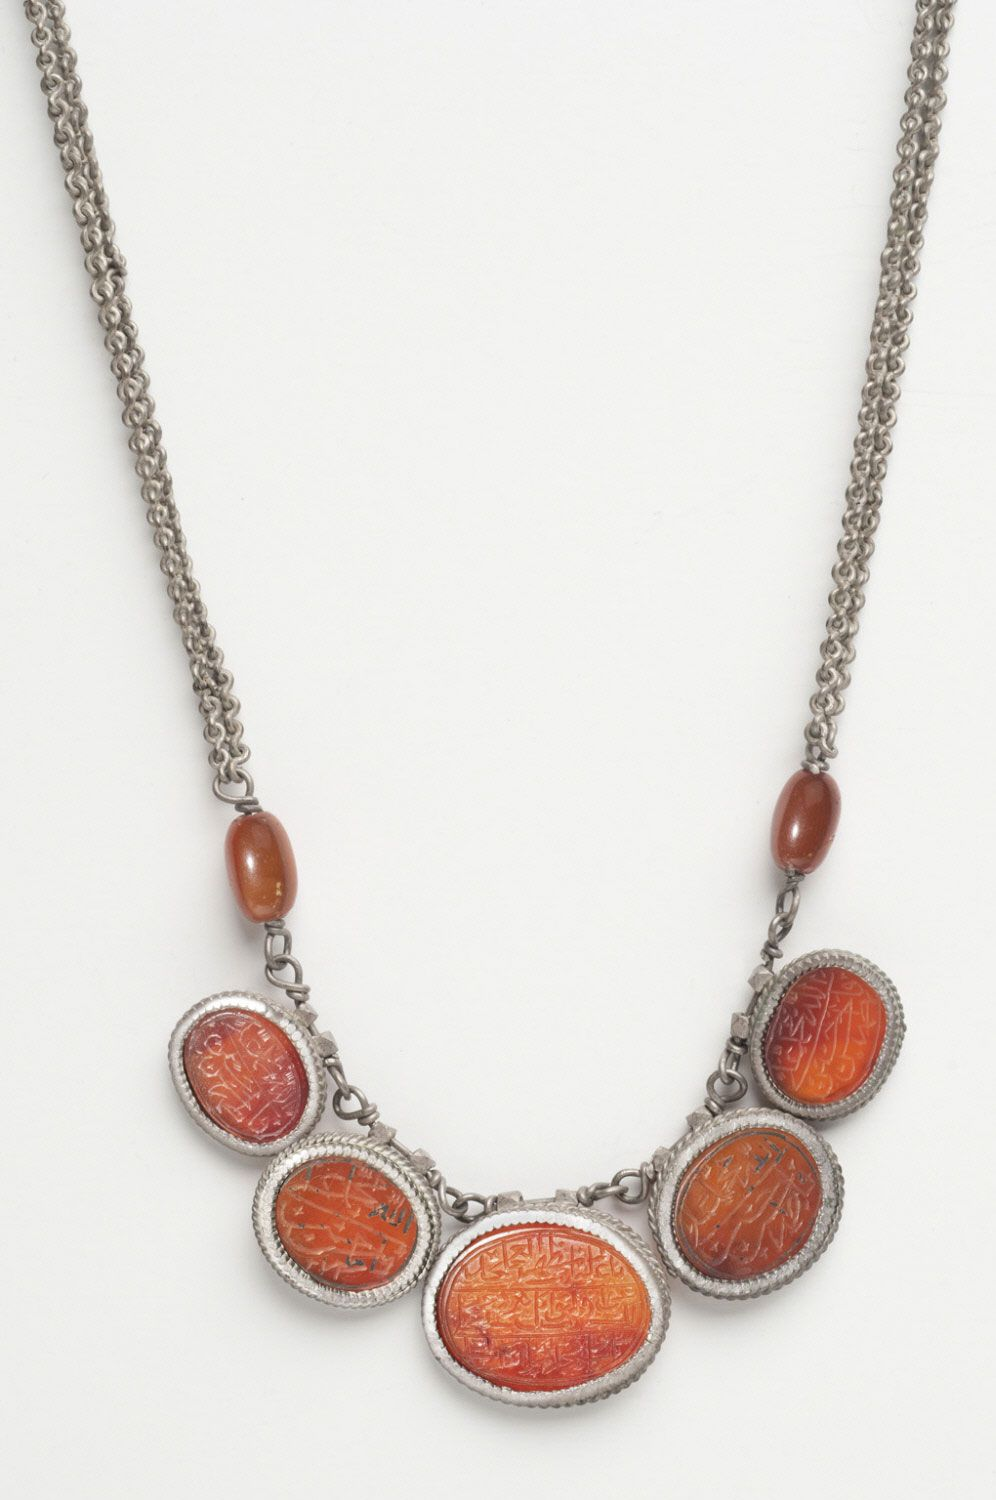 Philadelphia Museum of Art - Collections Object : Necklace